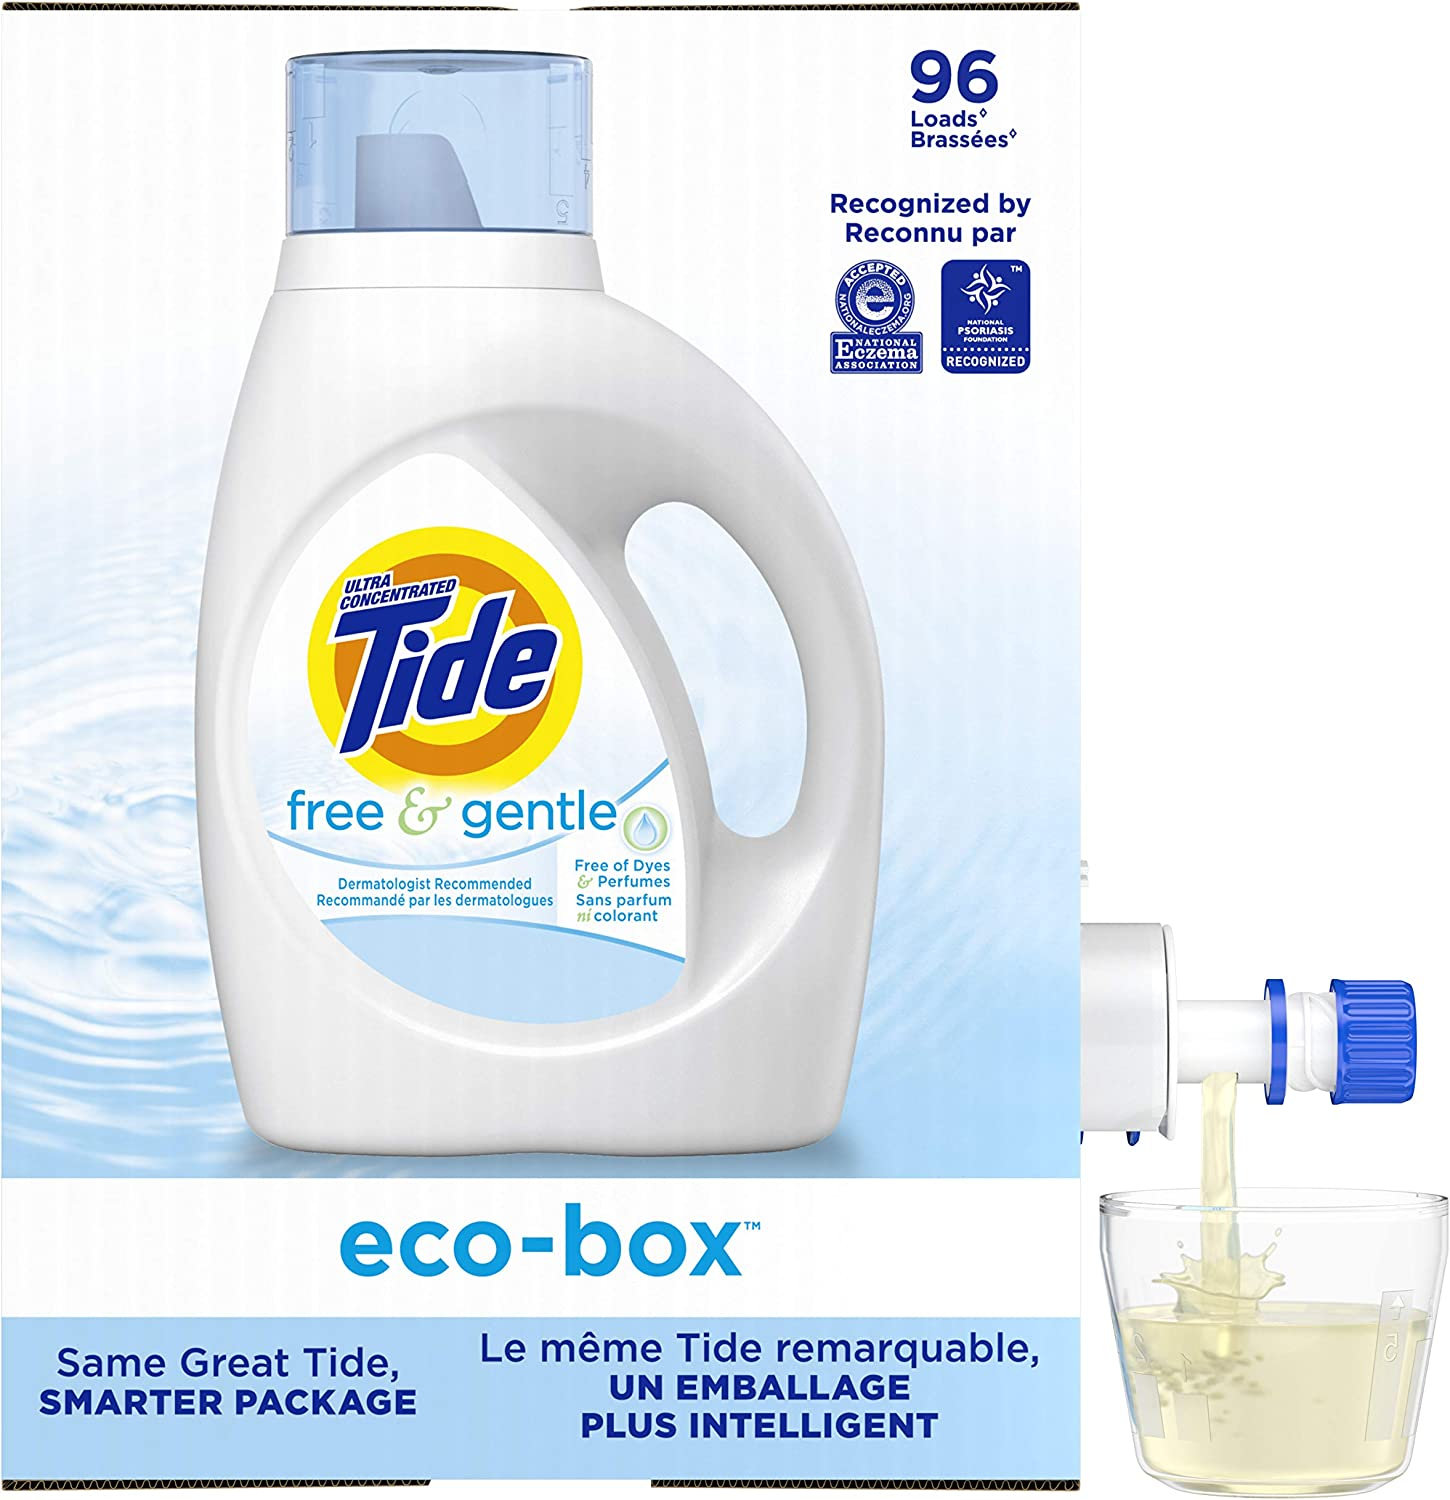 Tide Free & Gentle Liquid Laundry Detergent eco-box, HE Compatible, 105 fl oz, 96 loads